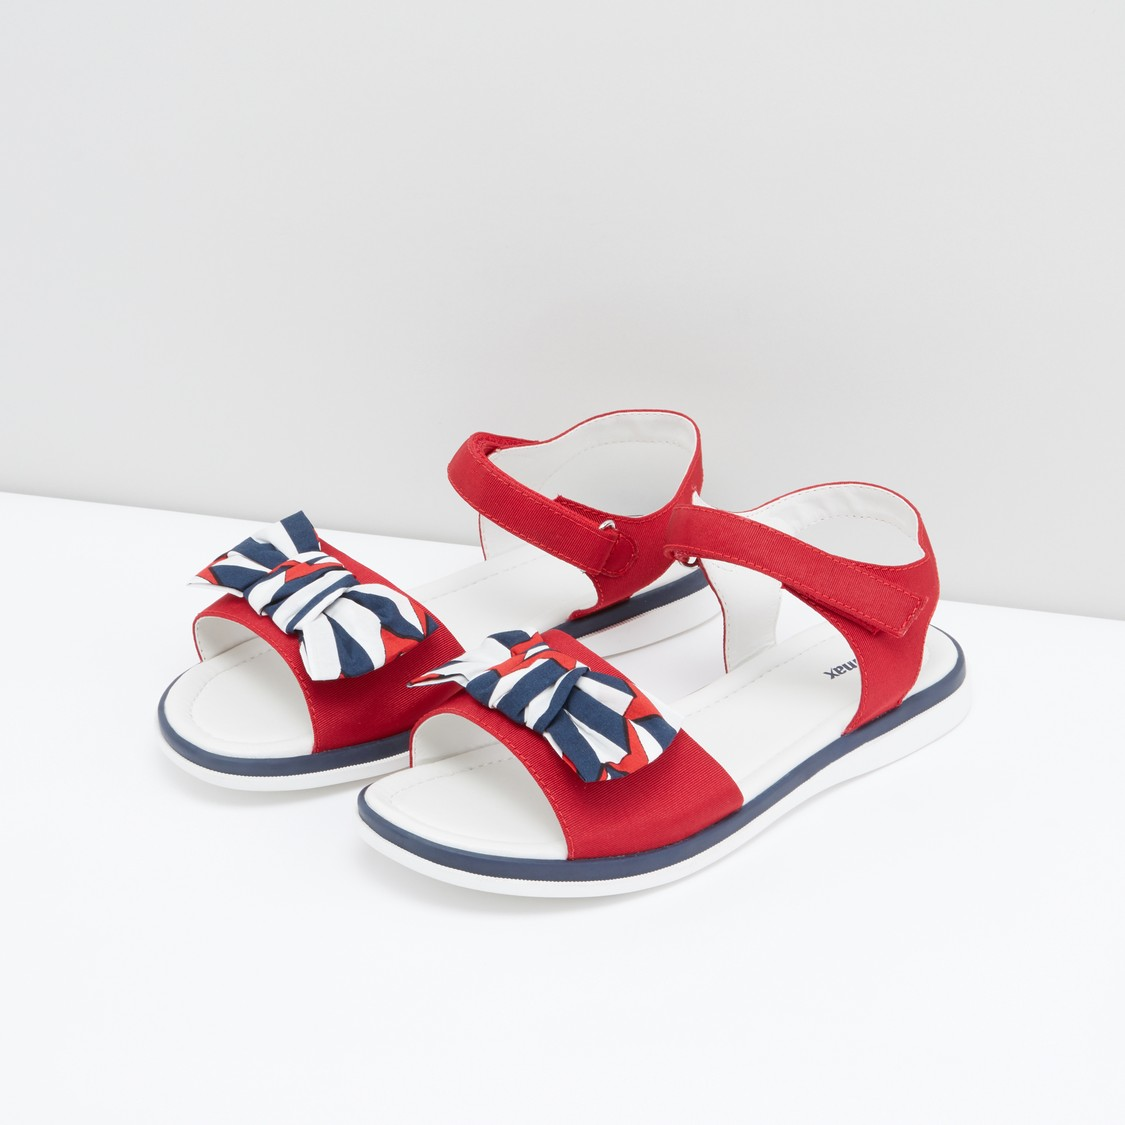 Bow Applique Detail Sandals with Hook and Loop Closure